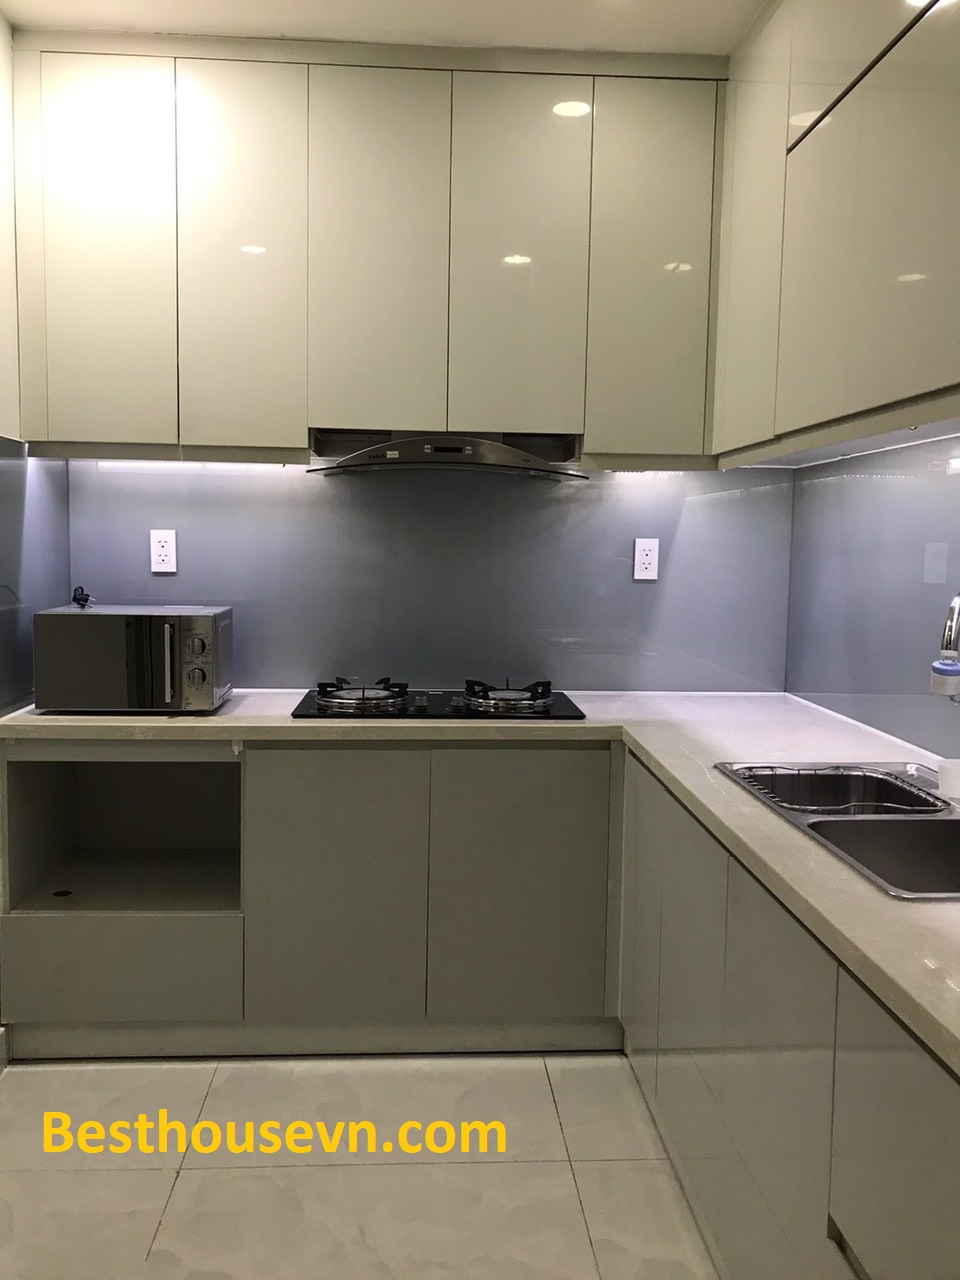 Scenic-valley-apartment-for rent-in-phu-my-hung